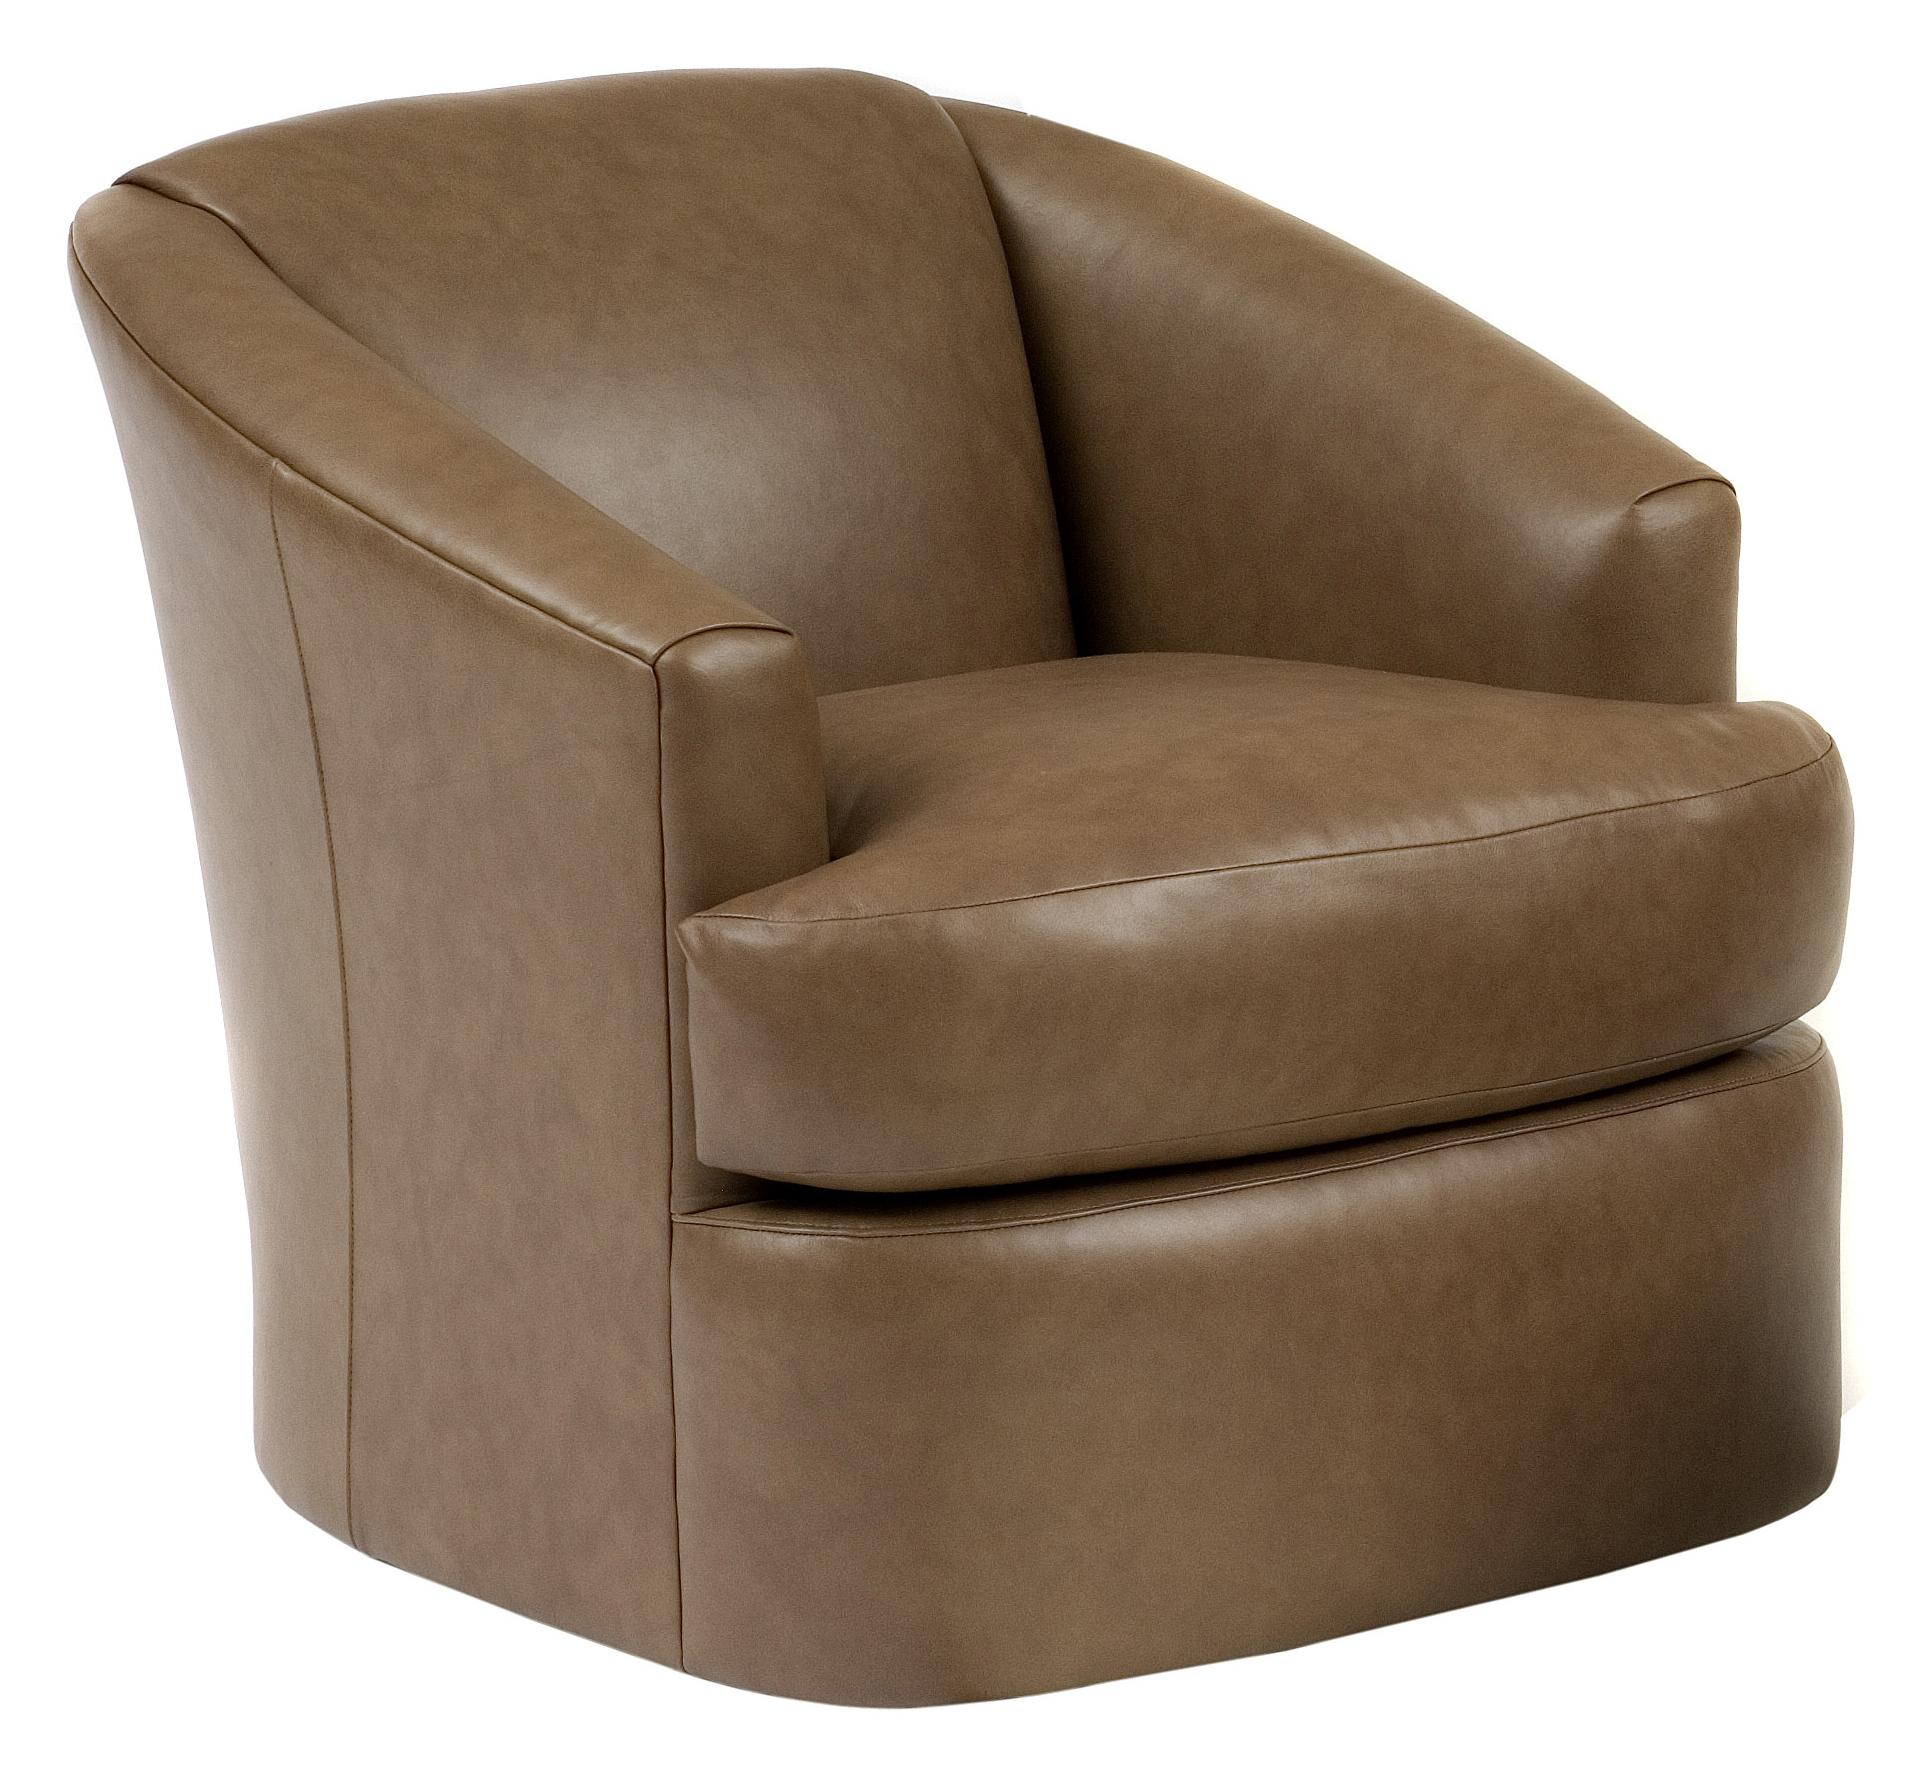 Smith Brothers Contemporary Chair by Smith Brothers at Saugerties Furniture Mart